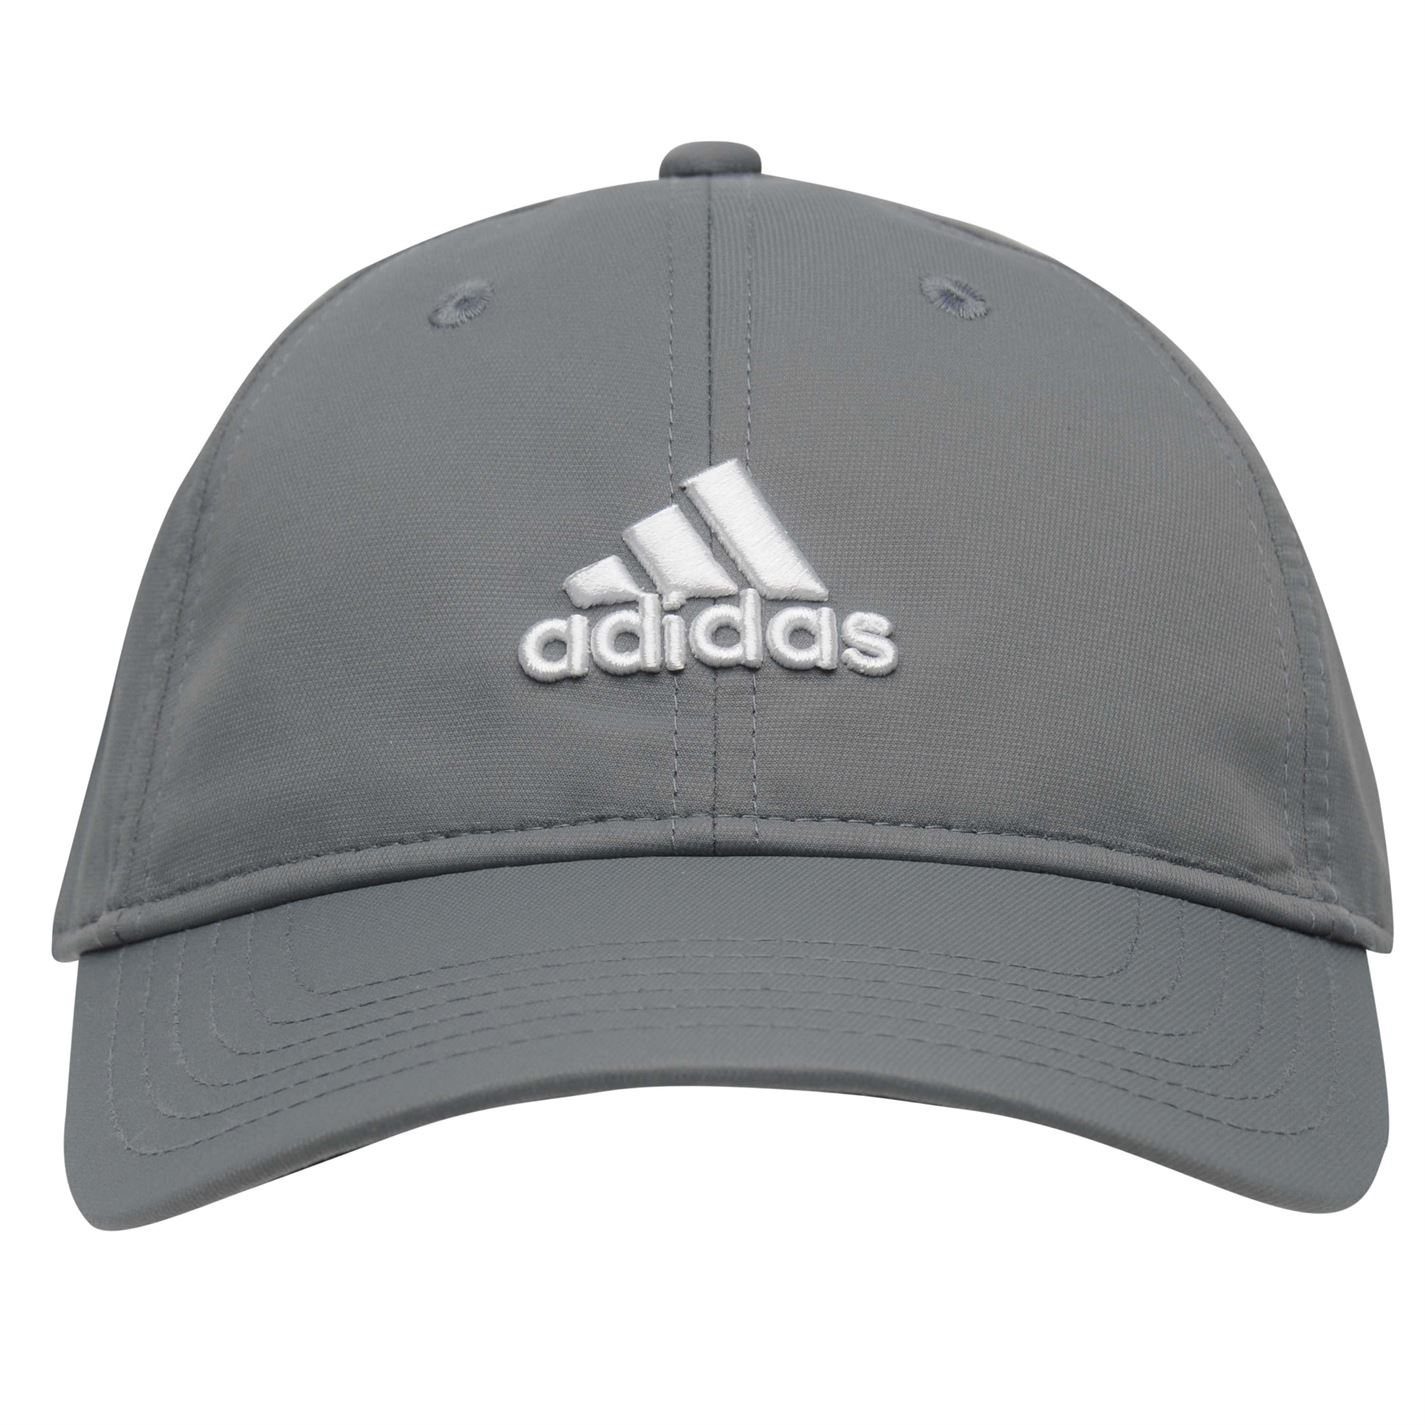 91b48ecef99 adidas Mens Golf Sports Flexible Peak Cap Hat Touch And Close Brand ...